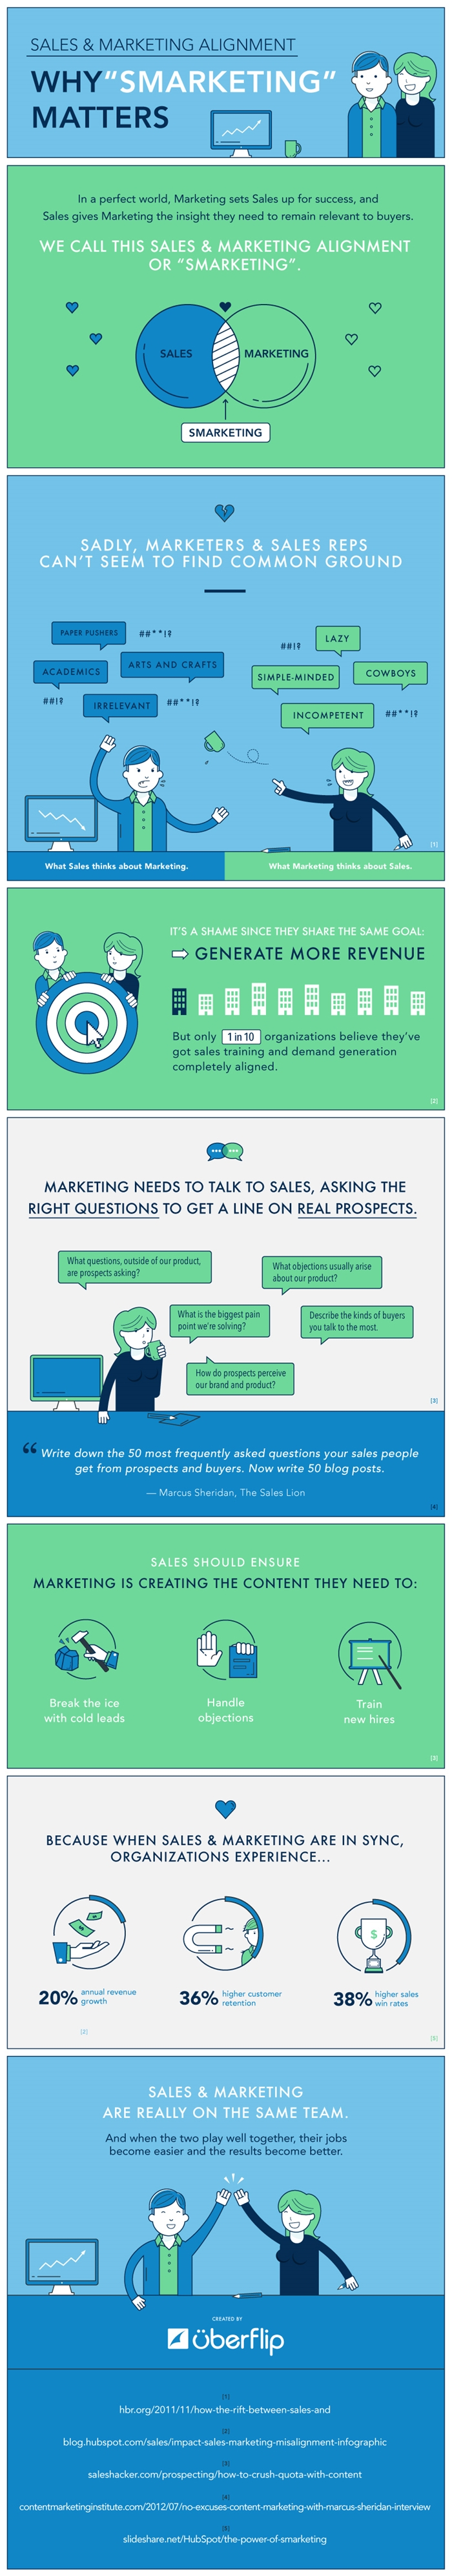 smarketinginfographic-700